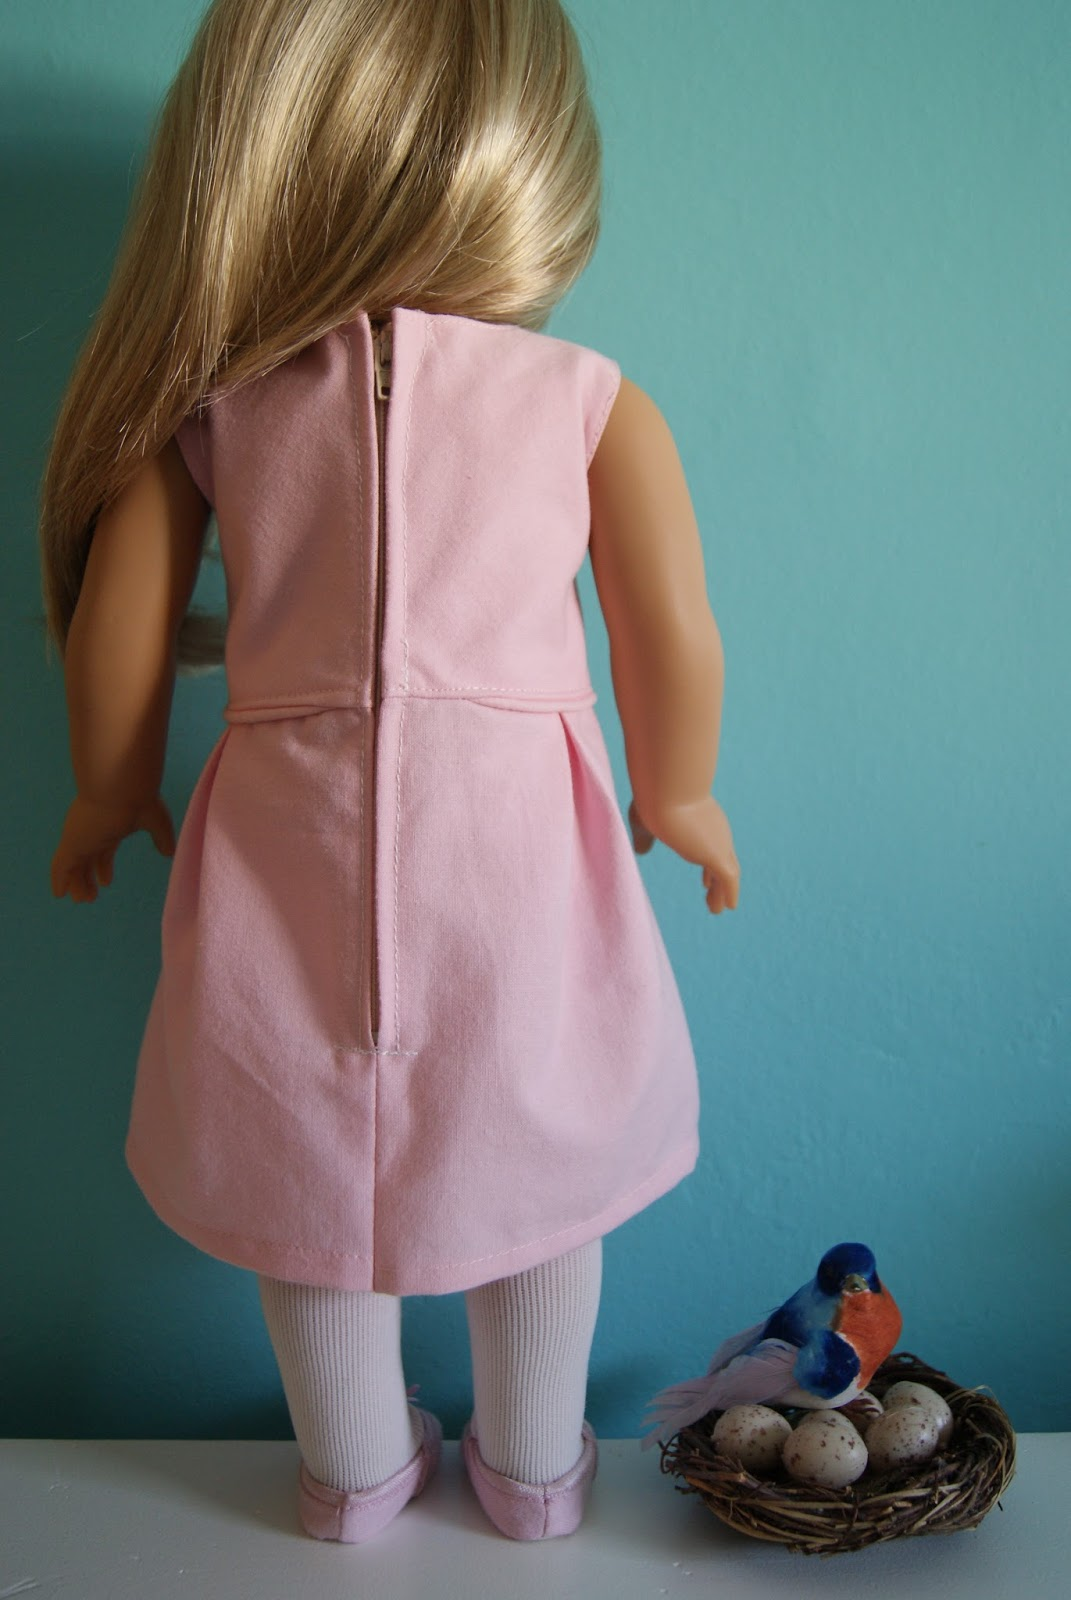 Katie 18-inch doll dress by nest full of eggs